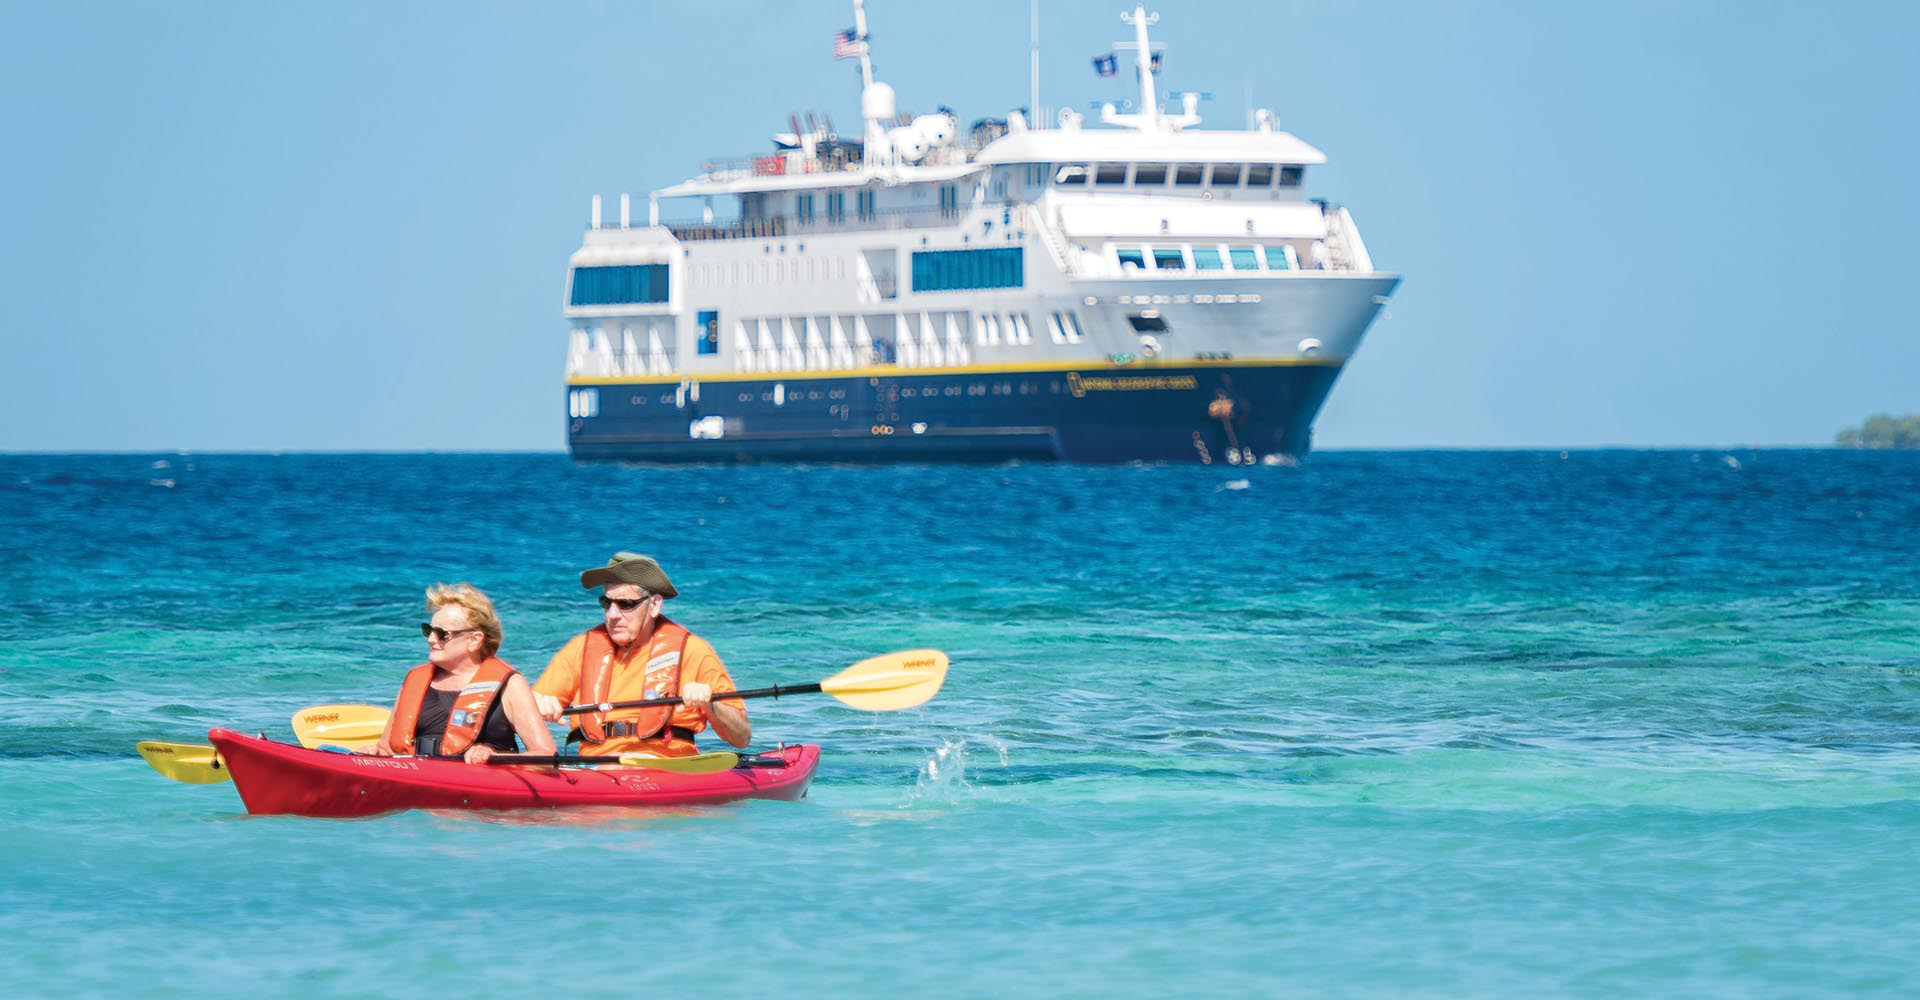 Small Ship Voyages Book Luxury Cruises with Lindblad National Geographic Cruises - Kayaking Excursion